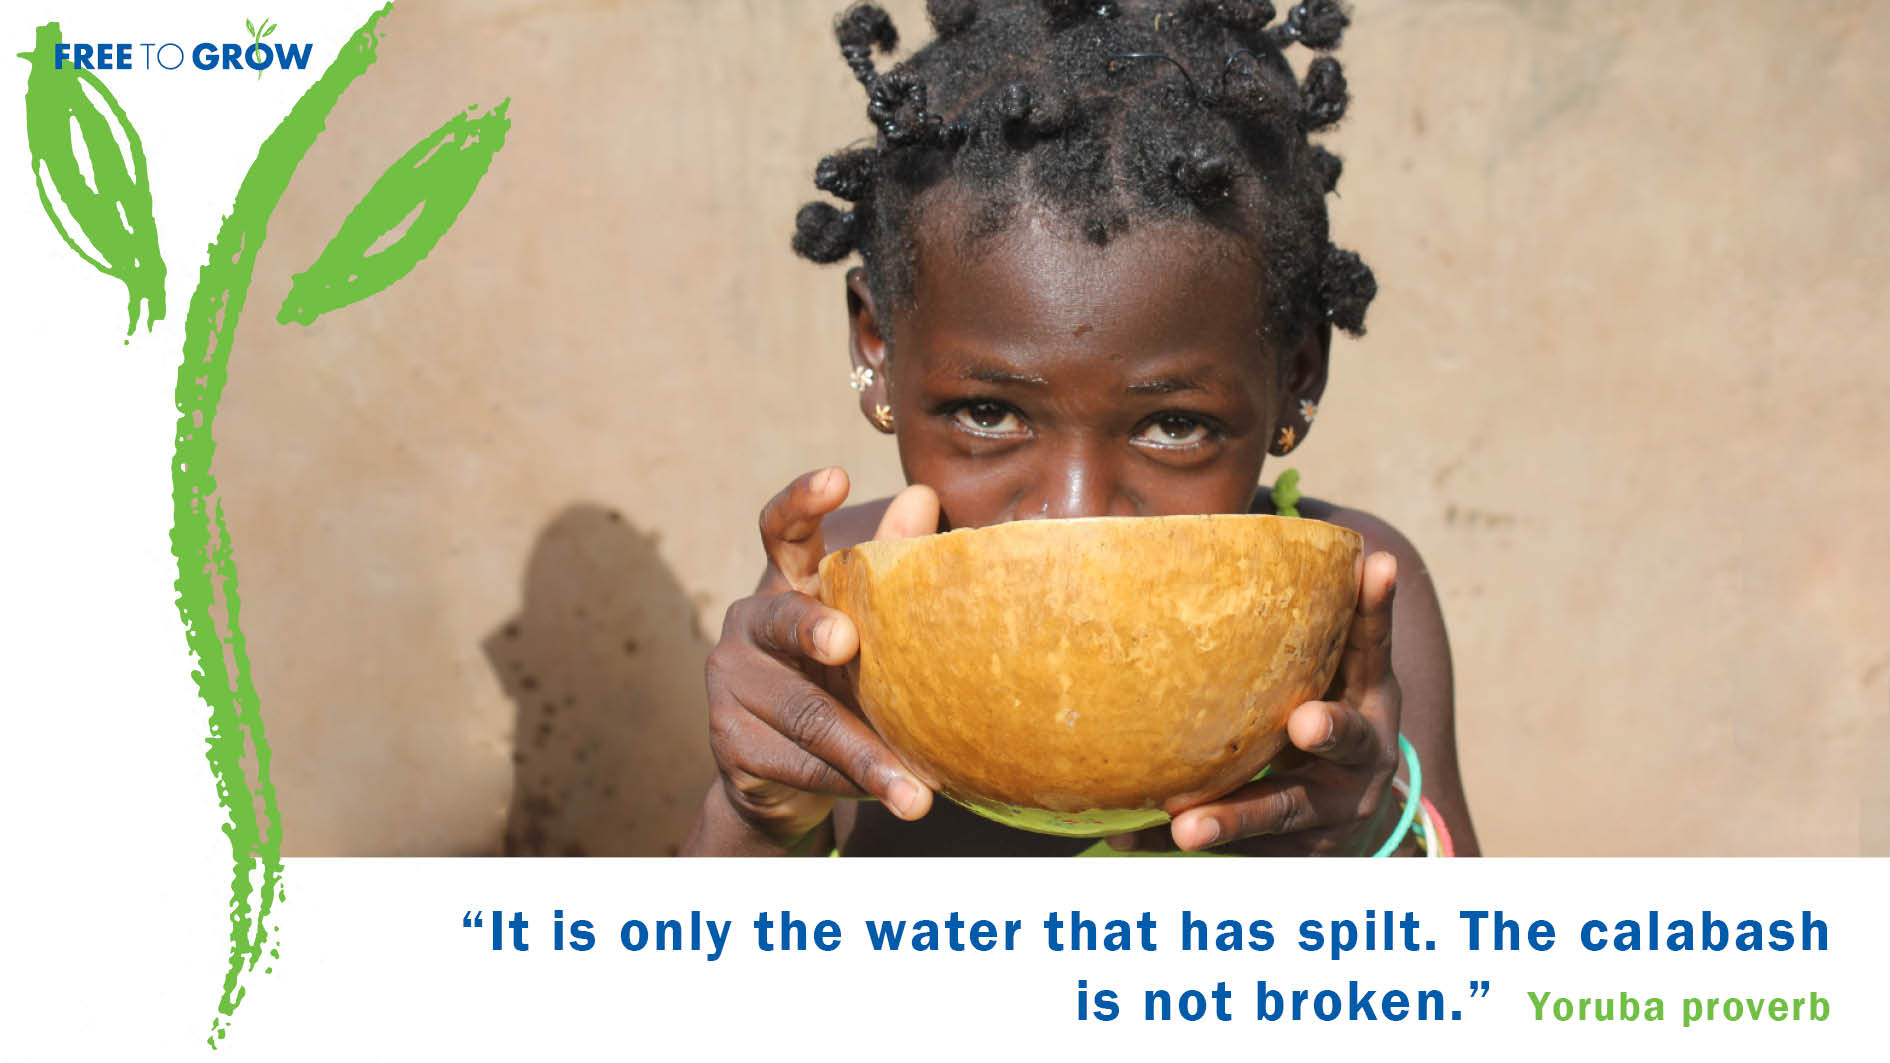 It is only the water that is spilt, the calabash is not broken.